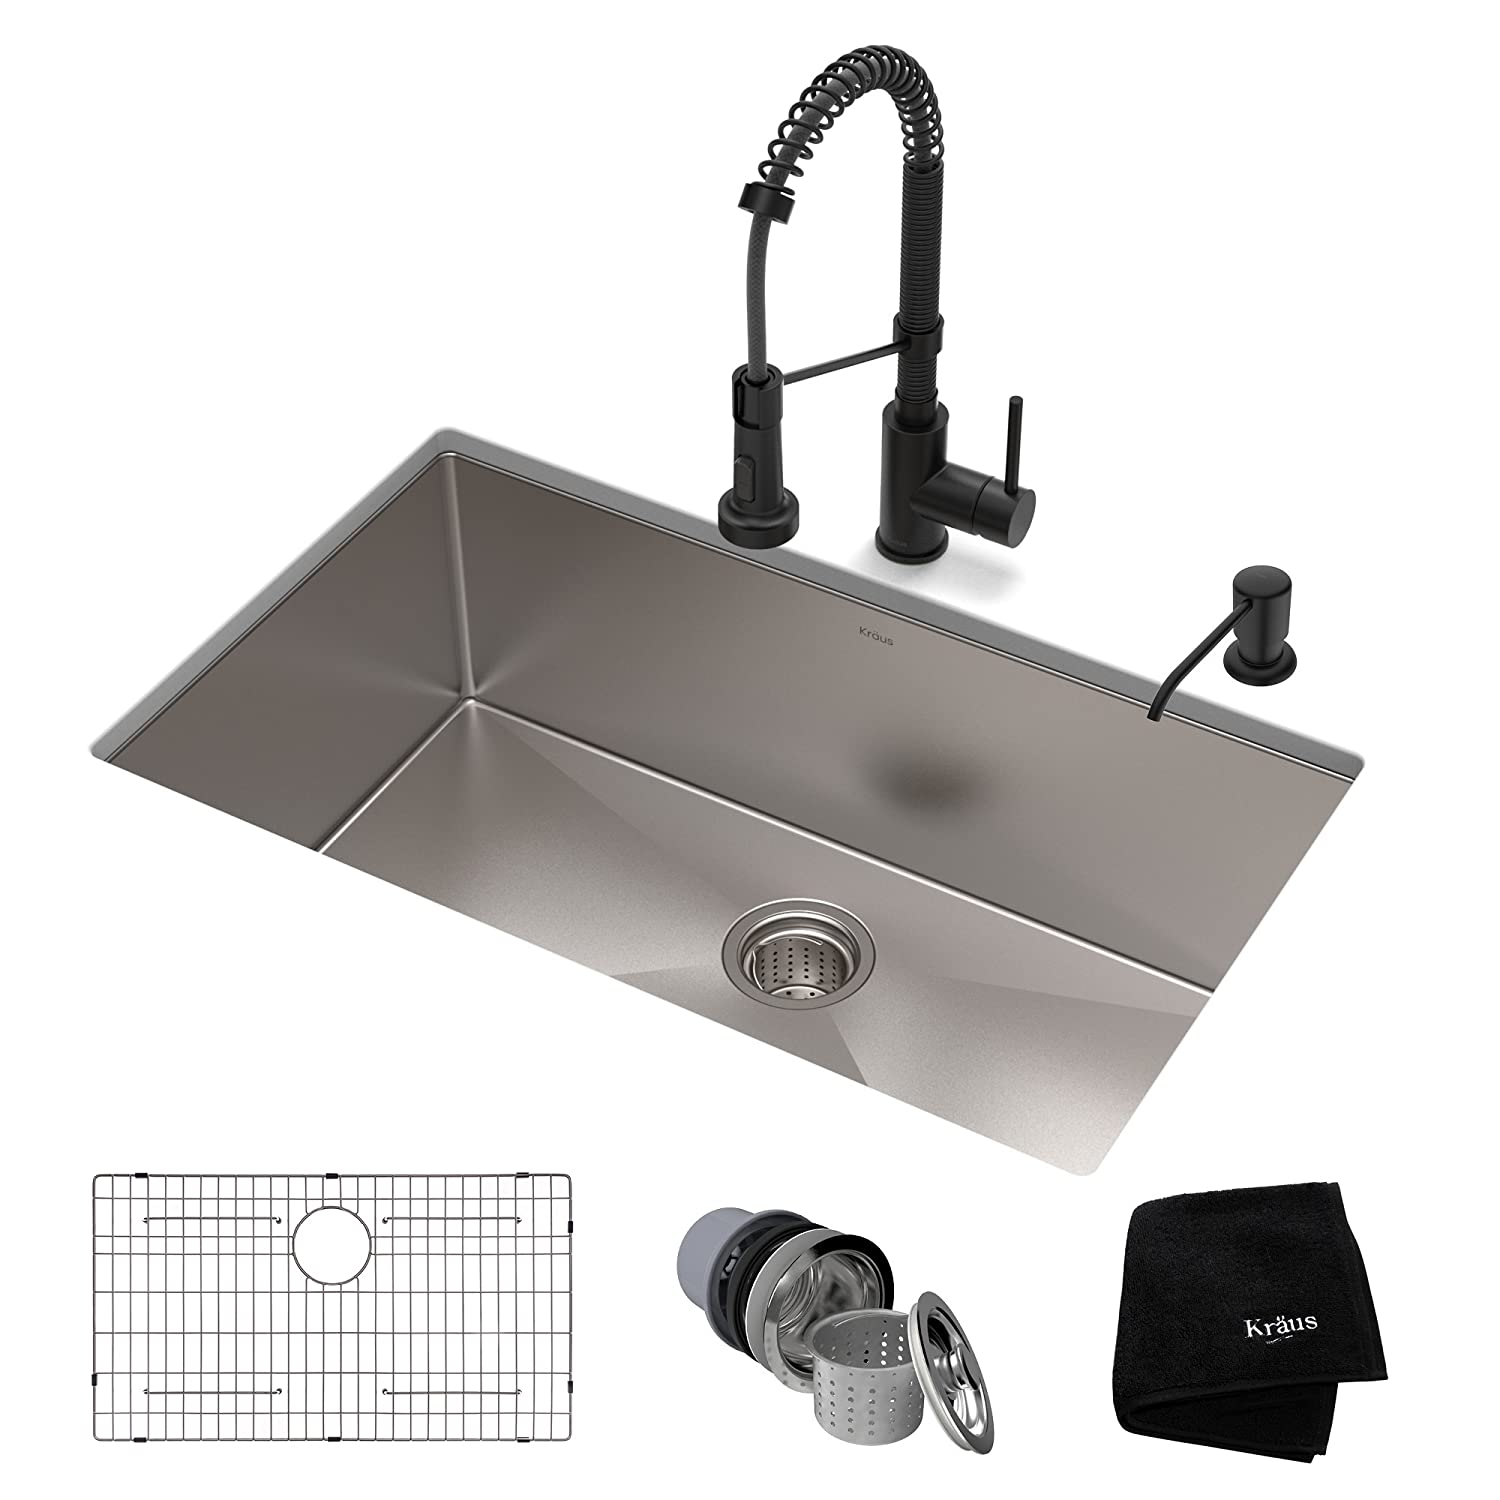 KRAUS KHU100-30-1610-53MB Set with Standart PRO Stainless Steel Sink and Bolden Commercial Pull Faucet in Matte Black Kitchen Sink & Faucet Combo 30 Inch